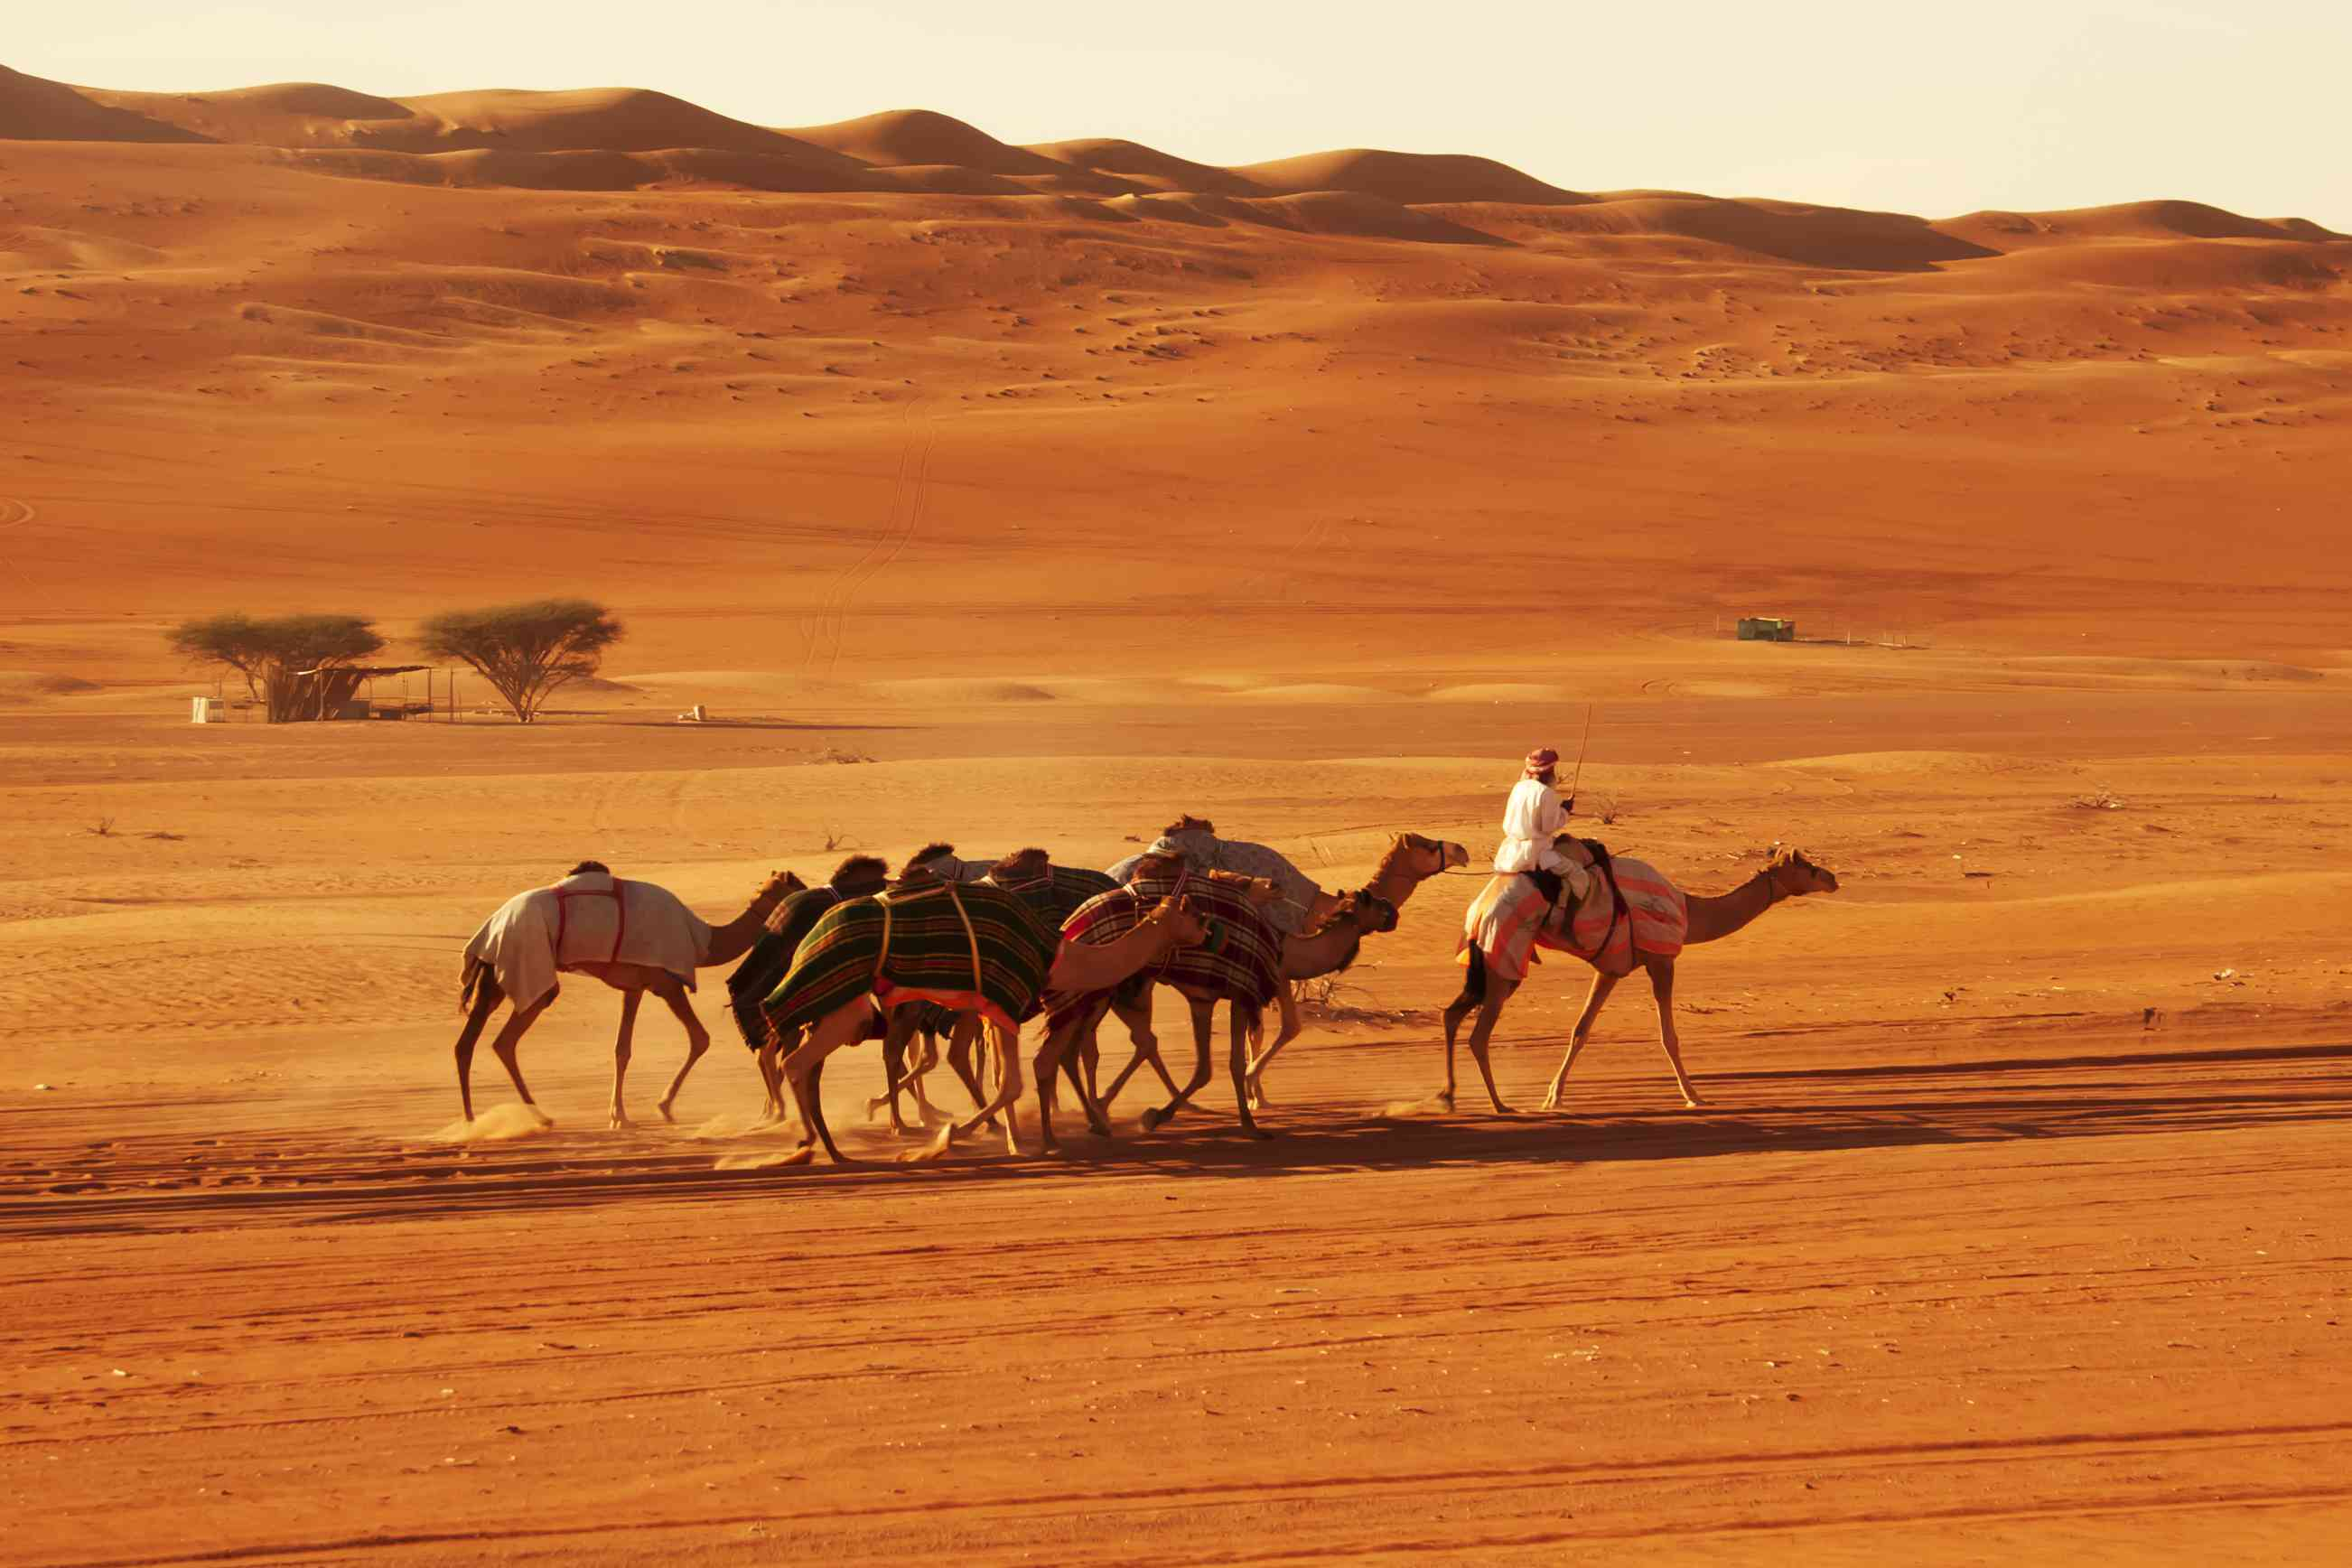 Bedouin man crossing the golden desert of Sharqiya/Wahiba Sands with his camels